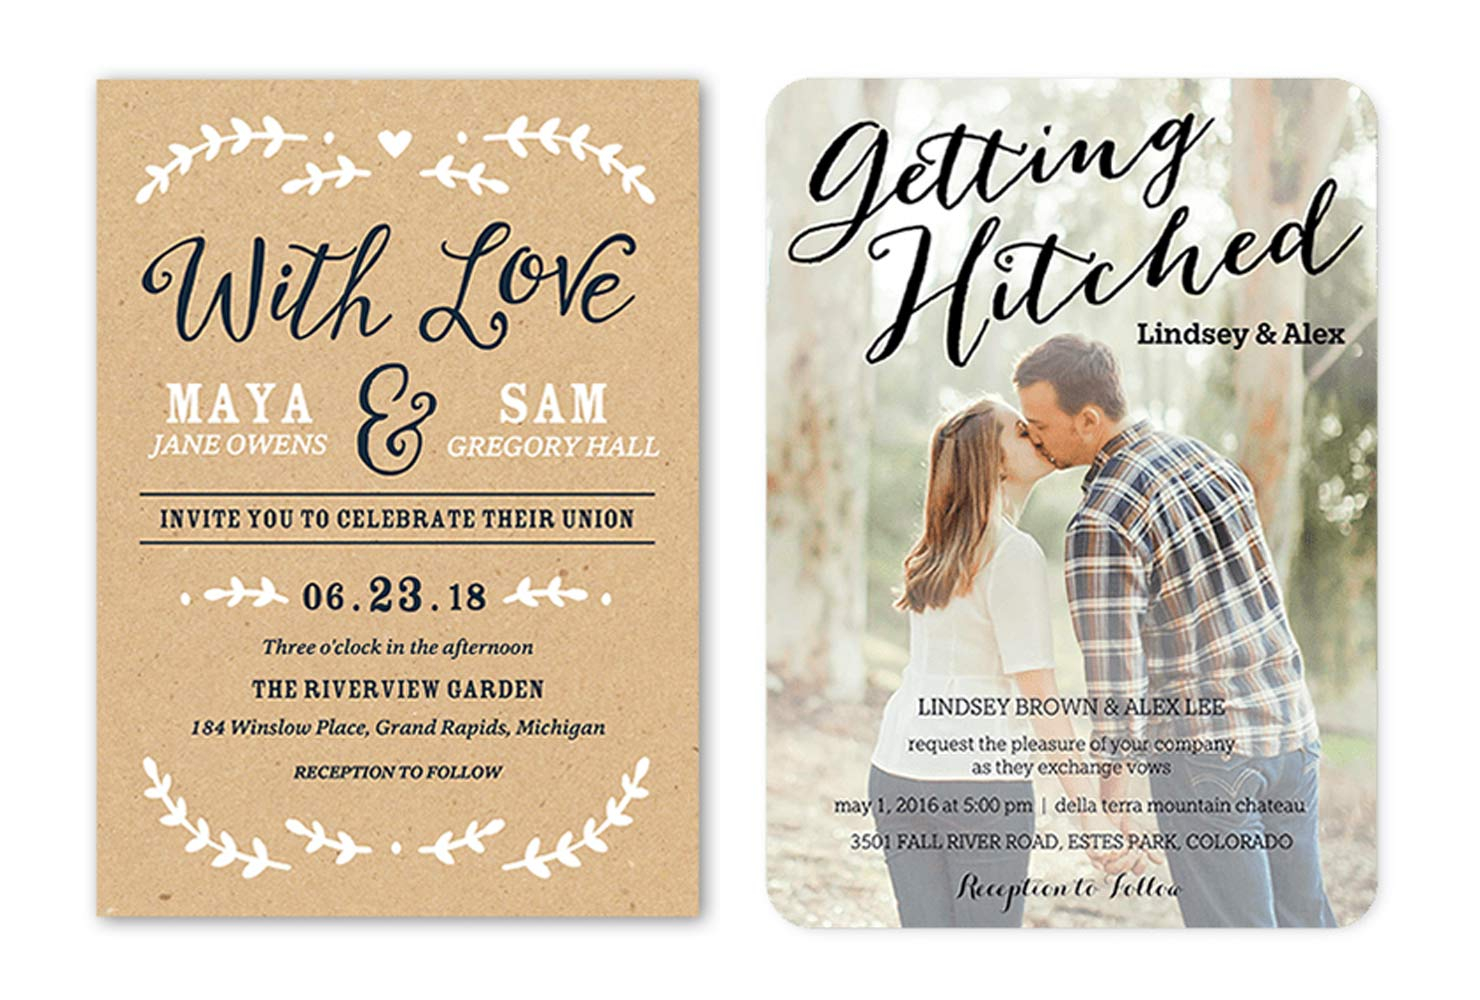 35 Wedding Invitation Wording Examples 2019 Shutterfly intended for sizing 1480 X 1000